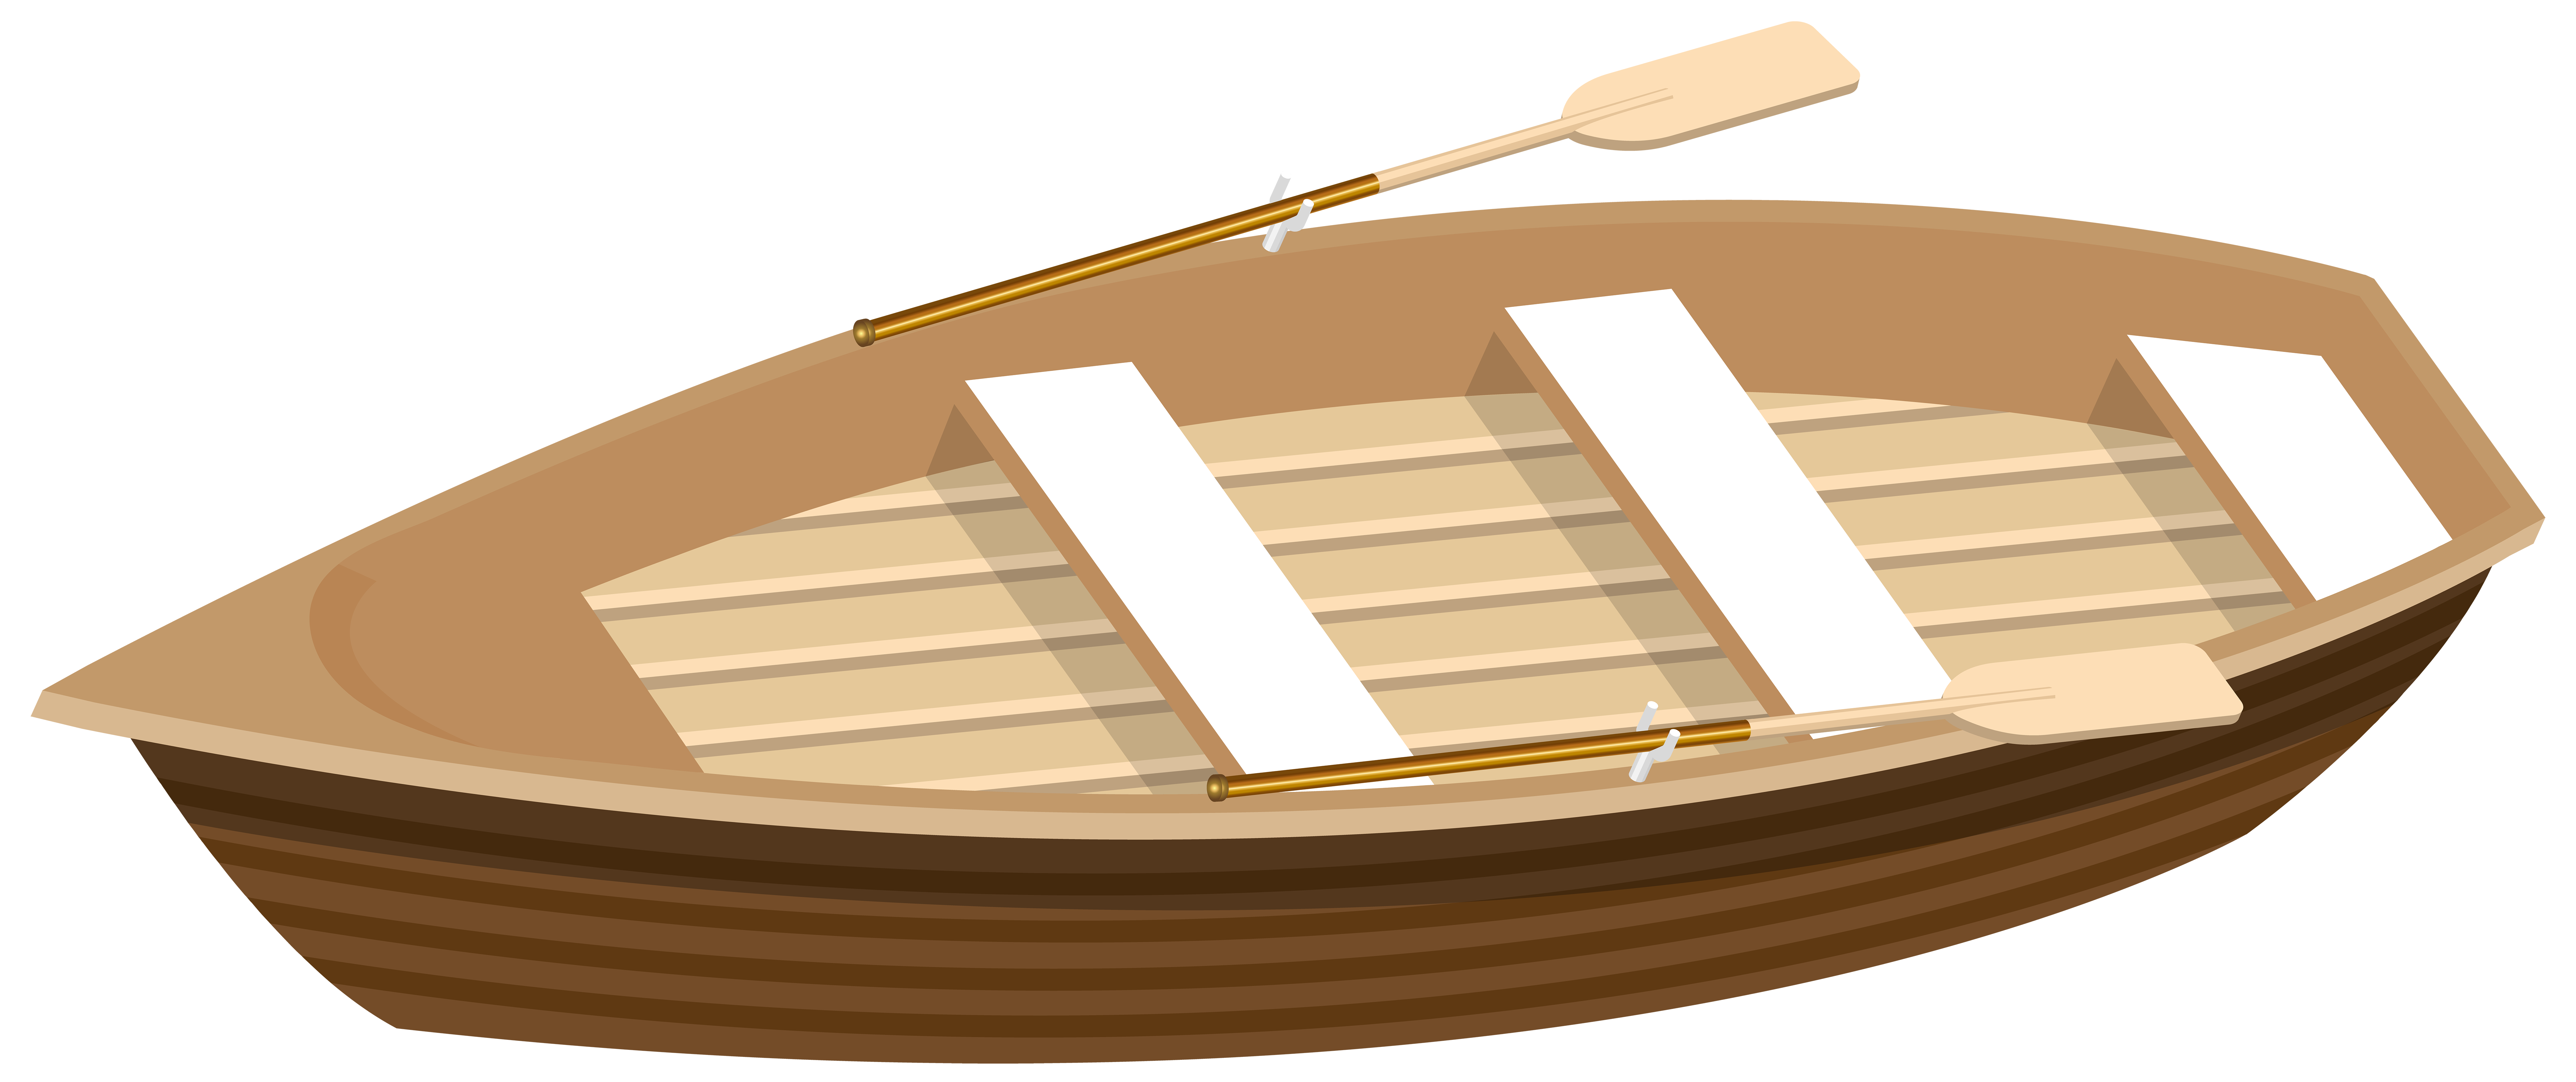 Wooden car clipart jpg Wooden Boat Transparent PNG Clip Art Image | Gallery Yopriceville ... jpg